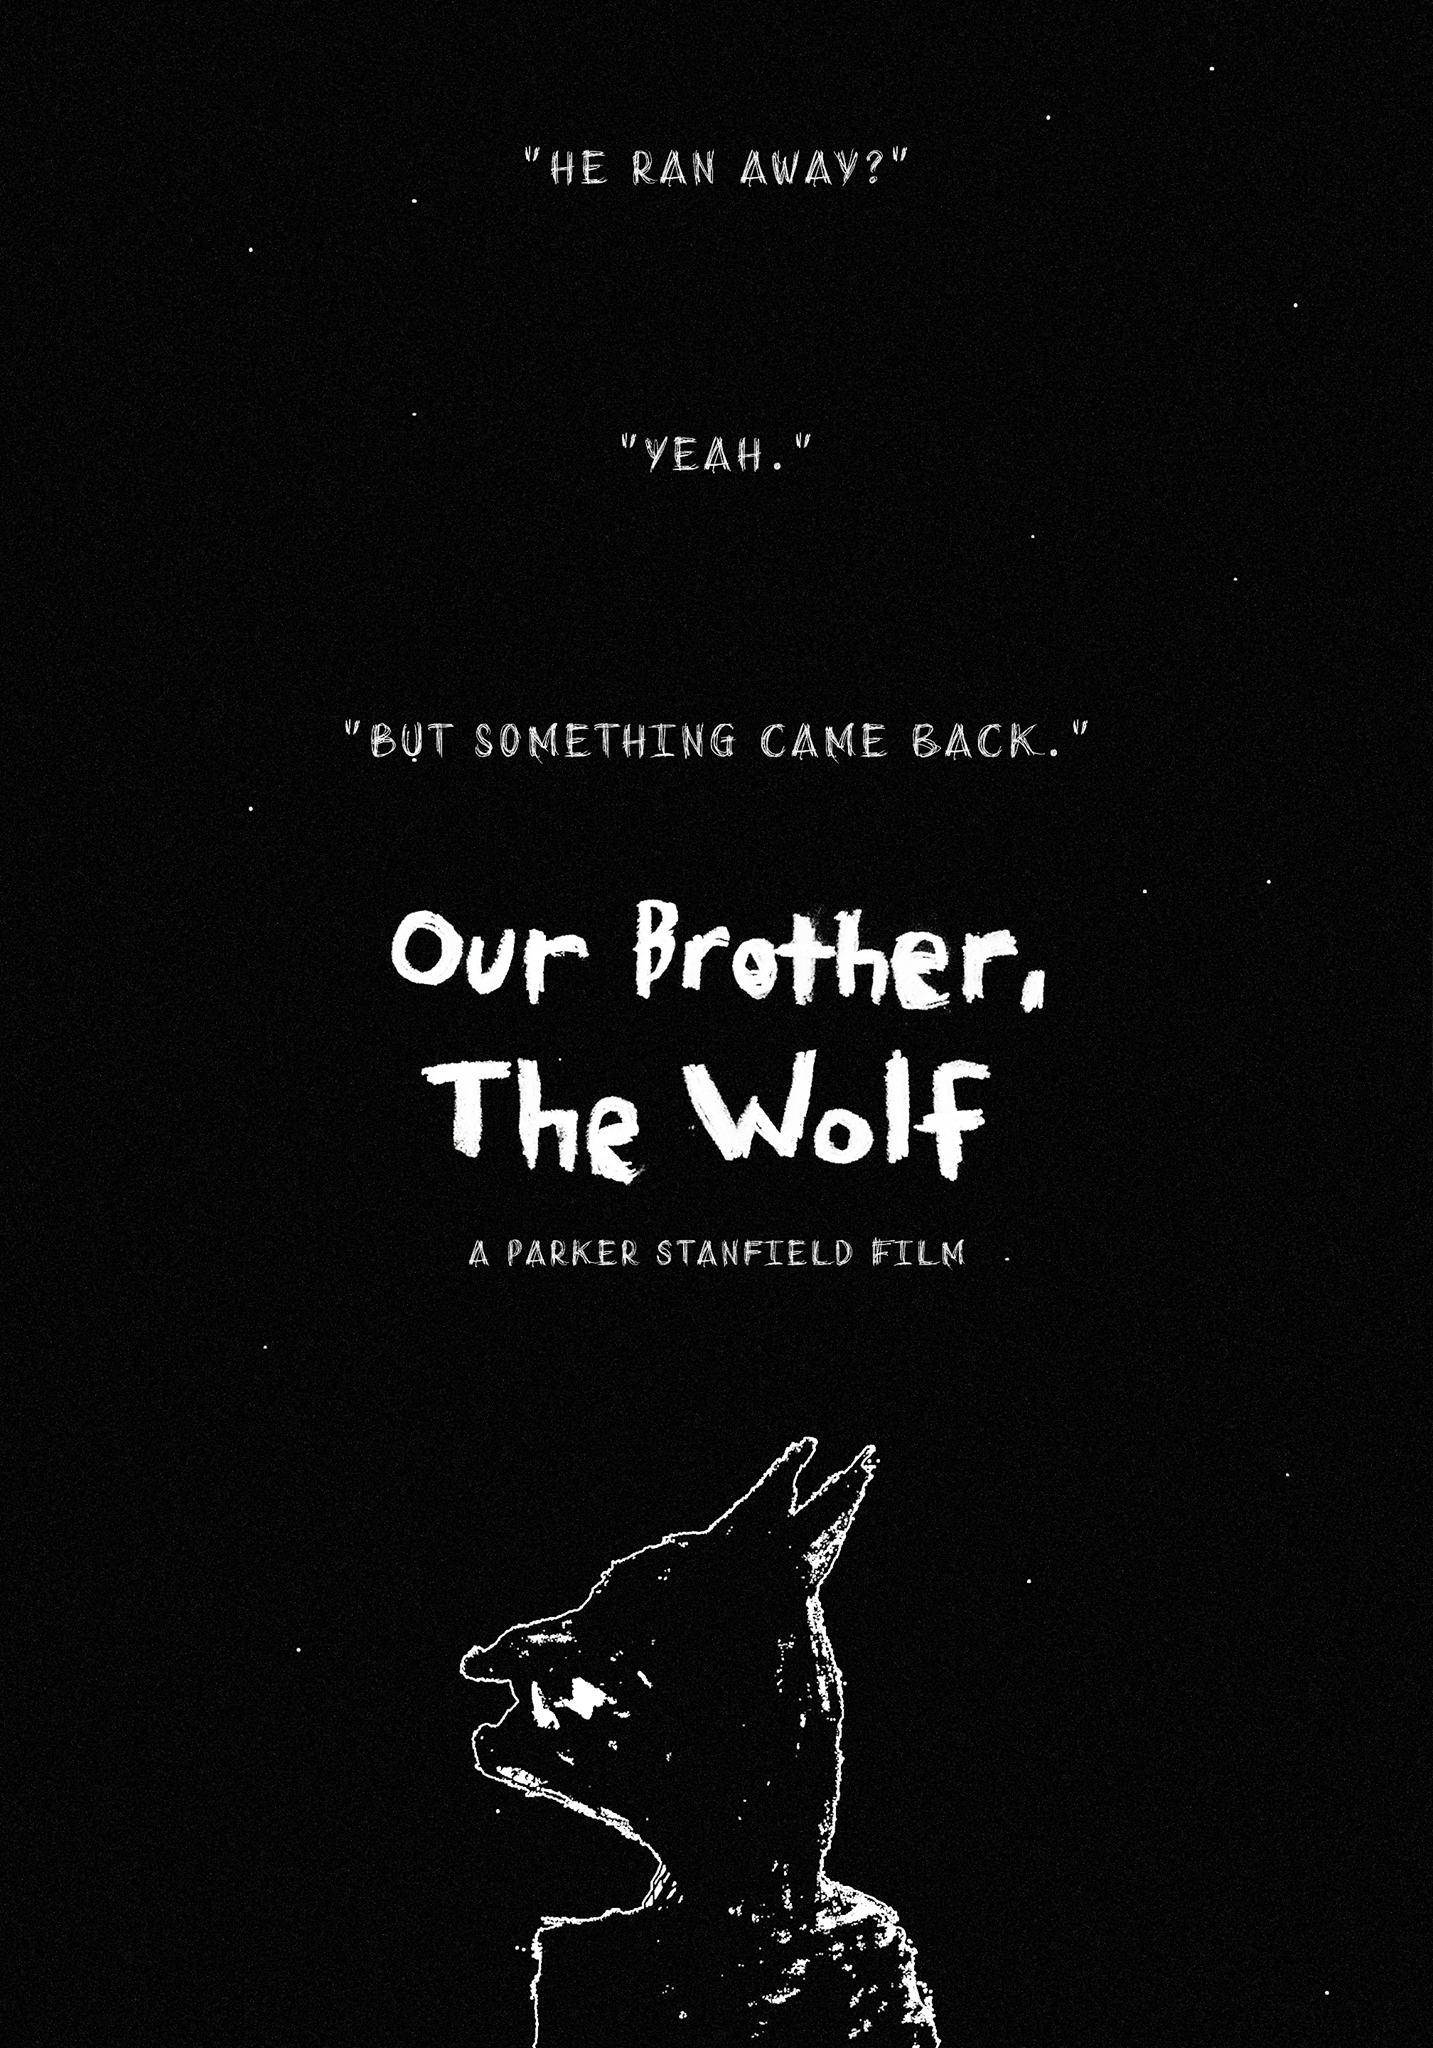 Our Brother, The Wolf